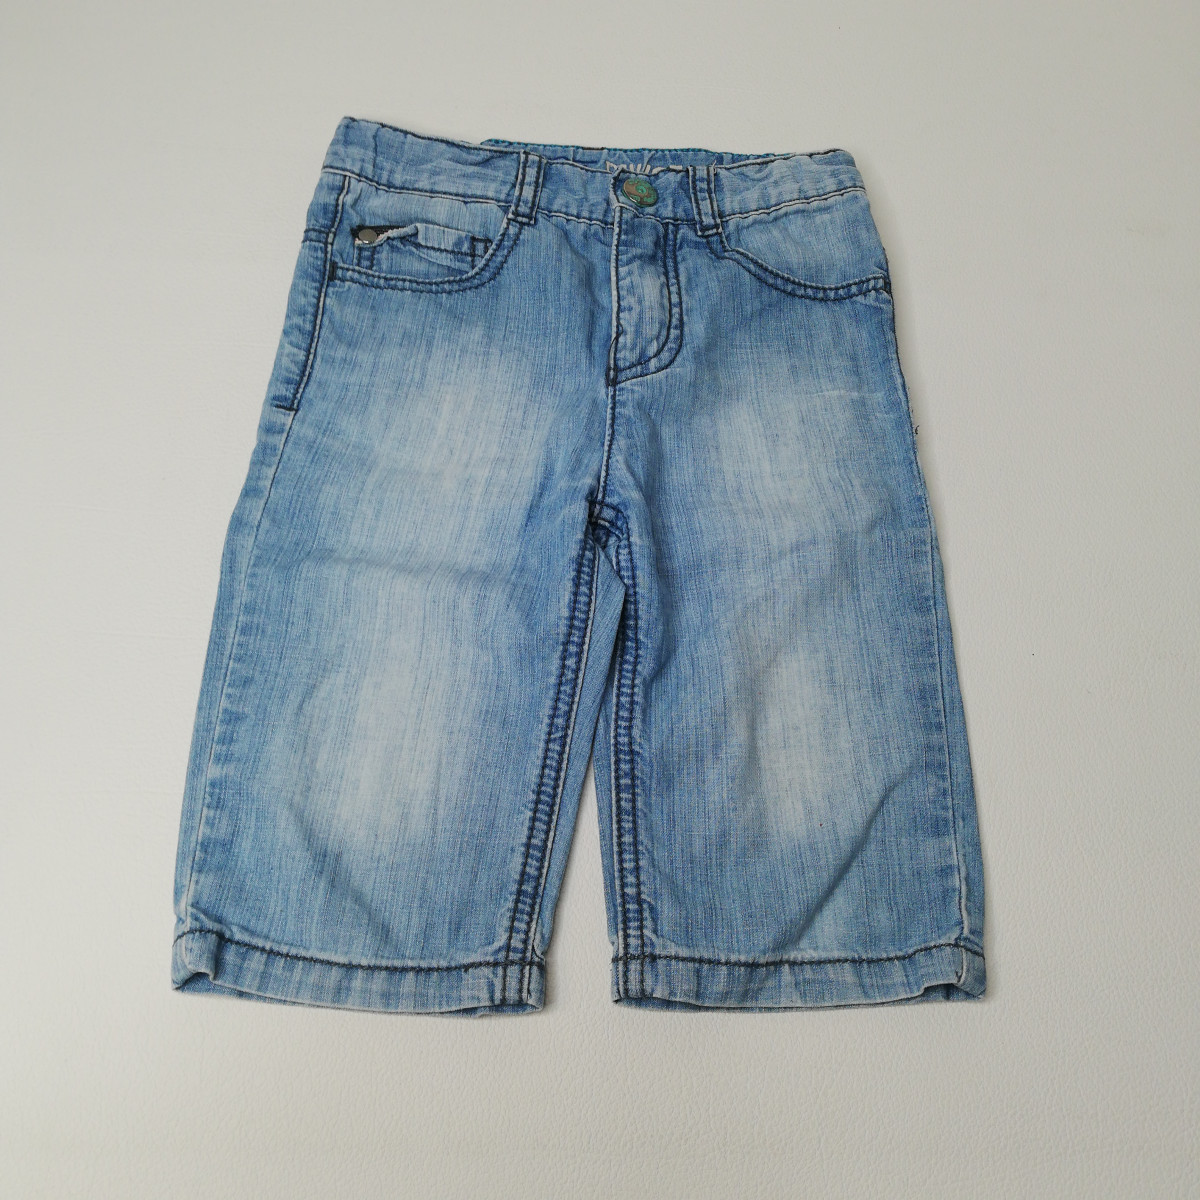 Bermuda jeans - photo 6